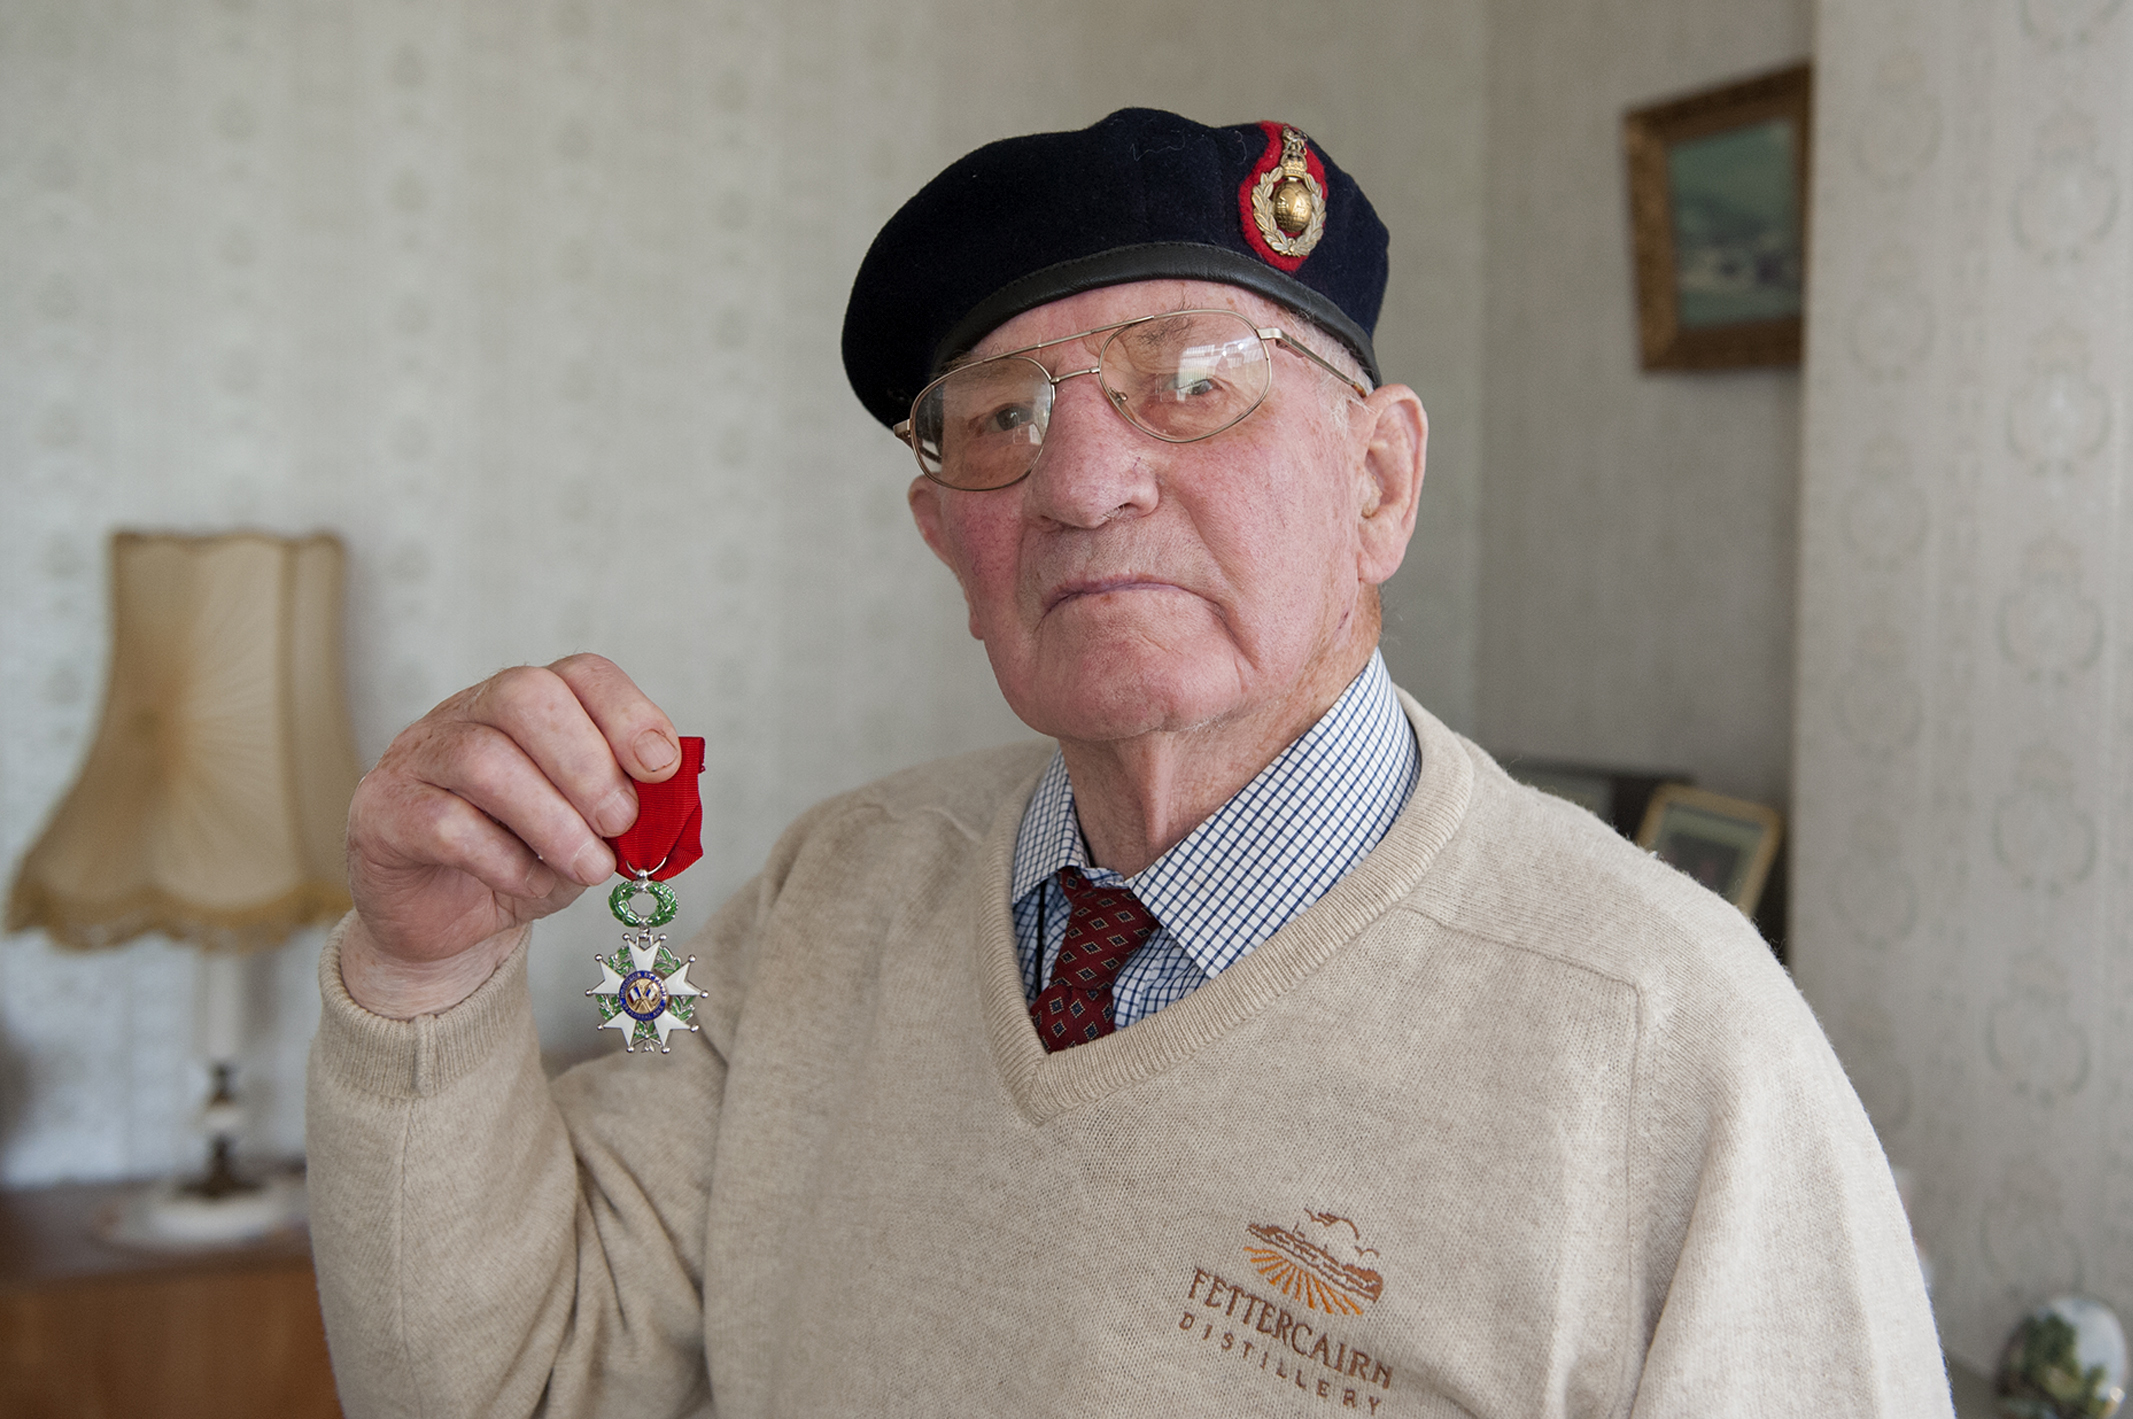 Douglas Cooper with his medal.